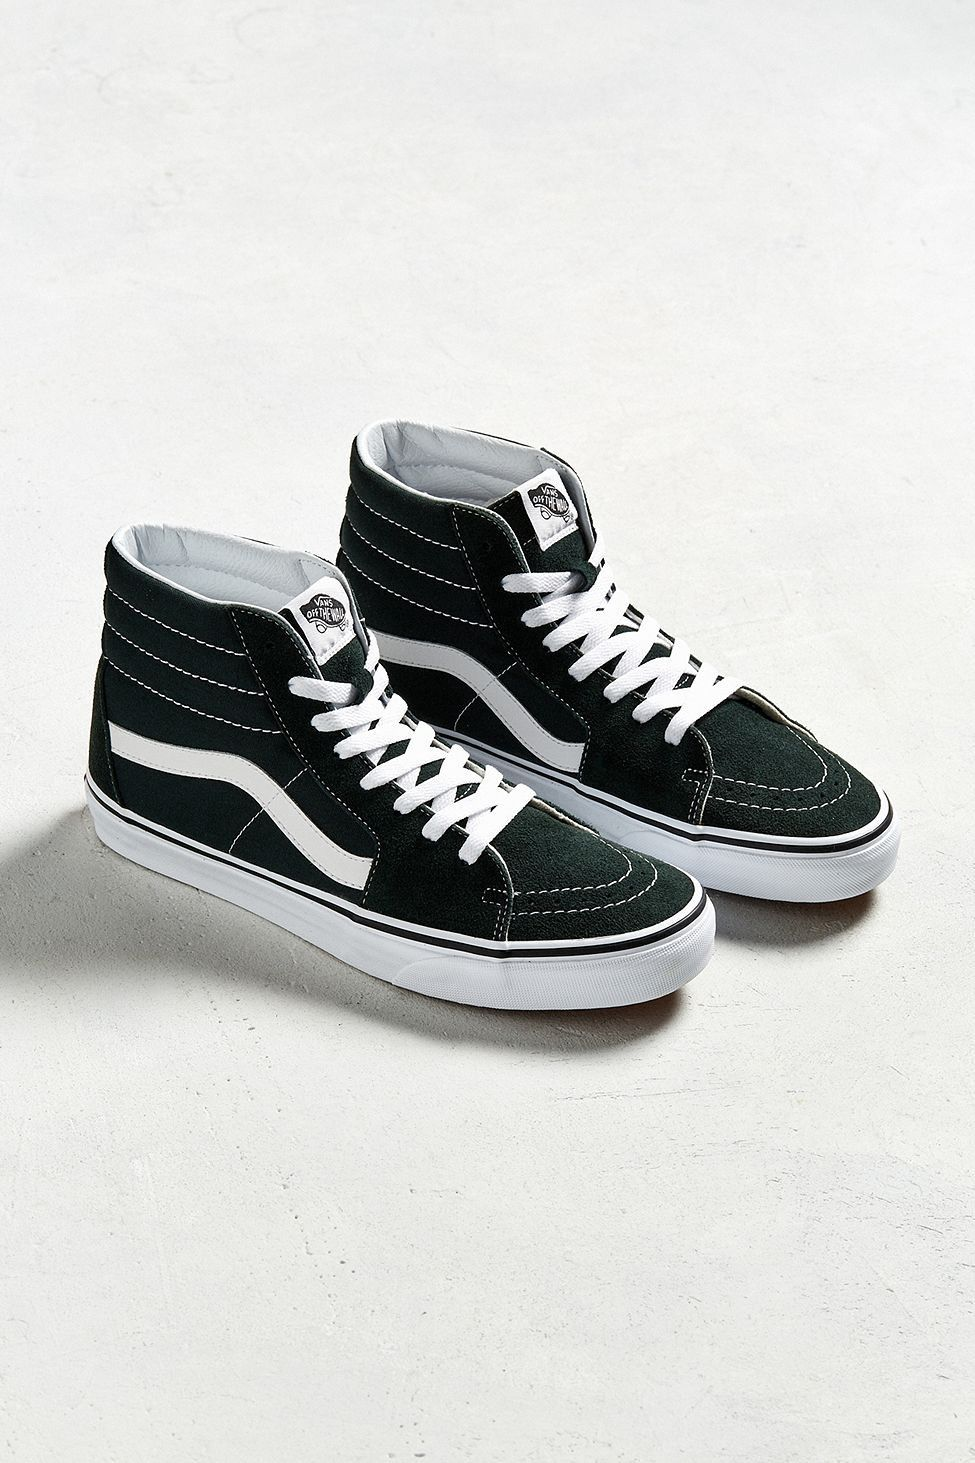 3b964612bf76 Urban Outfitters Vans Sk8-Hi Scarab Sneaker - M 12 W 13.5 One Size ...